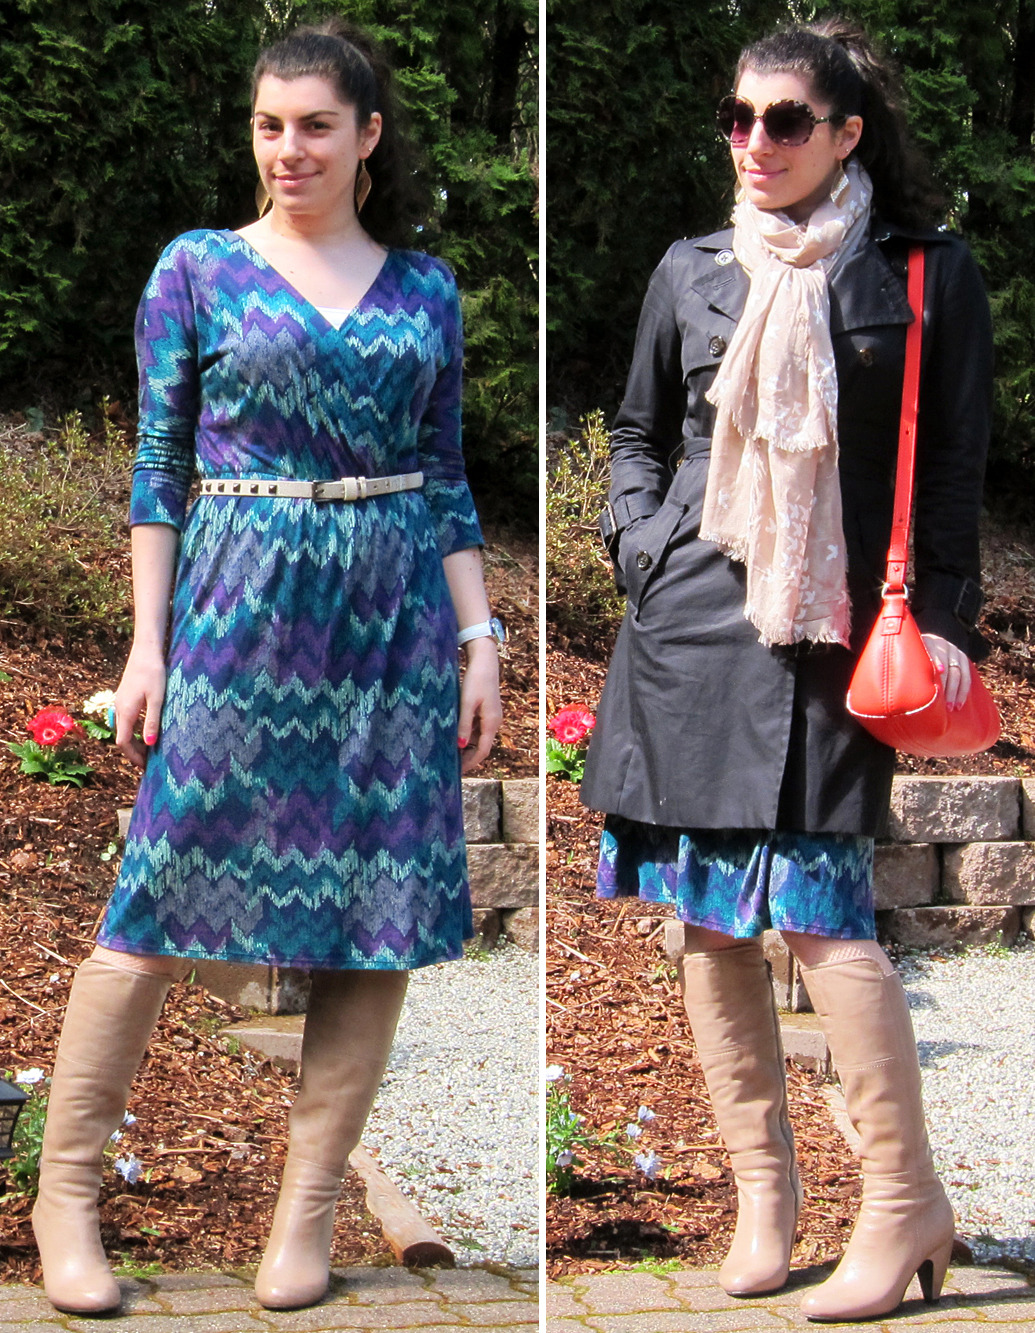 "04.04.2012 [wed] Worn to: work Dress: Old NavyBelt: VansTights: DKNY (gift)Boots: Miz Mooz ""Flynn"" (gift)Earrings, watch: TargetTrench: Banana Republic (via YLF swap)Scarf: Steve Madden (via Nordstrom)Purse: Kate SpadeShades: Forever 21  Thoughts:While I've put away nearly all of my winter items, these nude boots are going to stay out until the last possible second! I'm guessing around mid-April; the color could certainly be used all year but, regardless of color, tall boots just don't feel springy enough to me. I do see plenty of women wearing their tall boots all the way up until the start of summer around here because our springs are just ridiculously cold and wet. If it stays really cool I may leave them out until the end of the month, but we'll see how the weather goes.  Behind the outfit:In light of wearing some cooler weather items, today I wanted to wear this spring dress with my nude boots again while I can because I just love the combo! Not quite warm enough to skip the hose, so I wore my trusty nude fishnets. To lighten the look up I added an ivory studded belt and white watch, and there's a small peek of white camisole as well. I thought about a necklace, but I think I'mm starting to feel a bit off them after wearing so many pendants this past winter. So instead I put my hair up and went with long dangly gold earrings! (And because it's much colder than that sun may lead you to think, I of course needed a coat. To keep it light, I added my taupe scarf which picks up on the light boots and helps to bookend them against the dark coat/hair. And the bright orange purse is just fun ^^)"